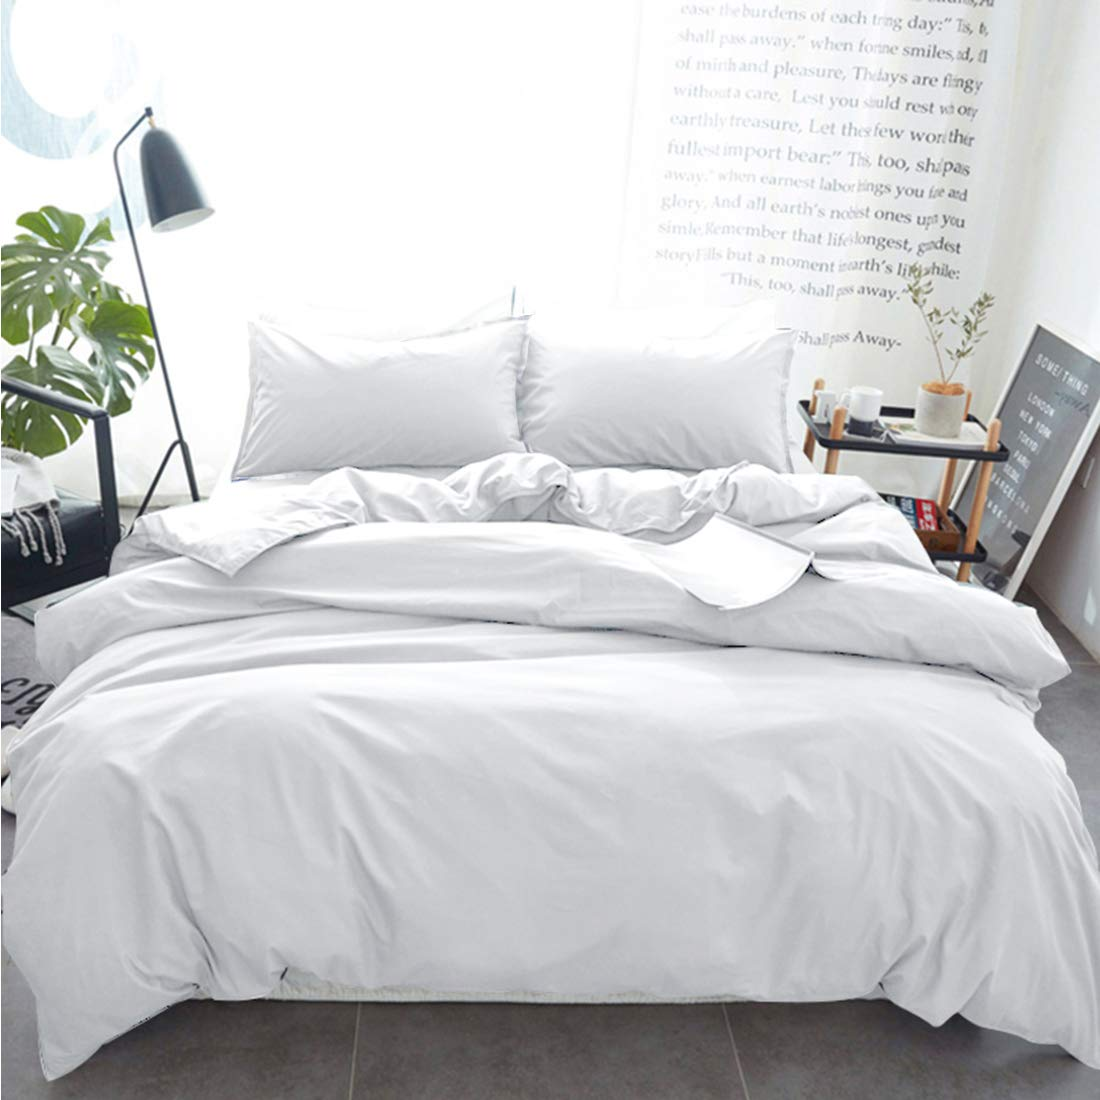 INGALIK Bedding 3 Piece Duvet Cover Set Queen Size with Zipper Closure Ultra Soft Breathable 100% Washed Microfiber Hotel Luxury Solid Color Collection 3pc (1 Duvet Cover + 2 Pillow Shams) White